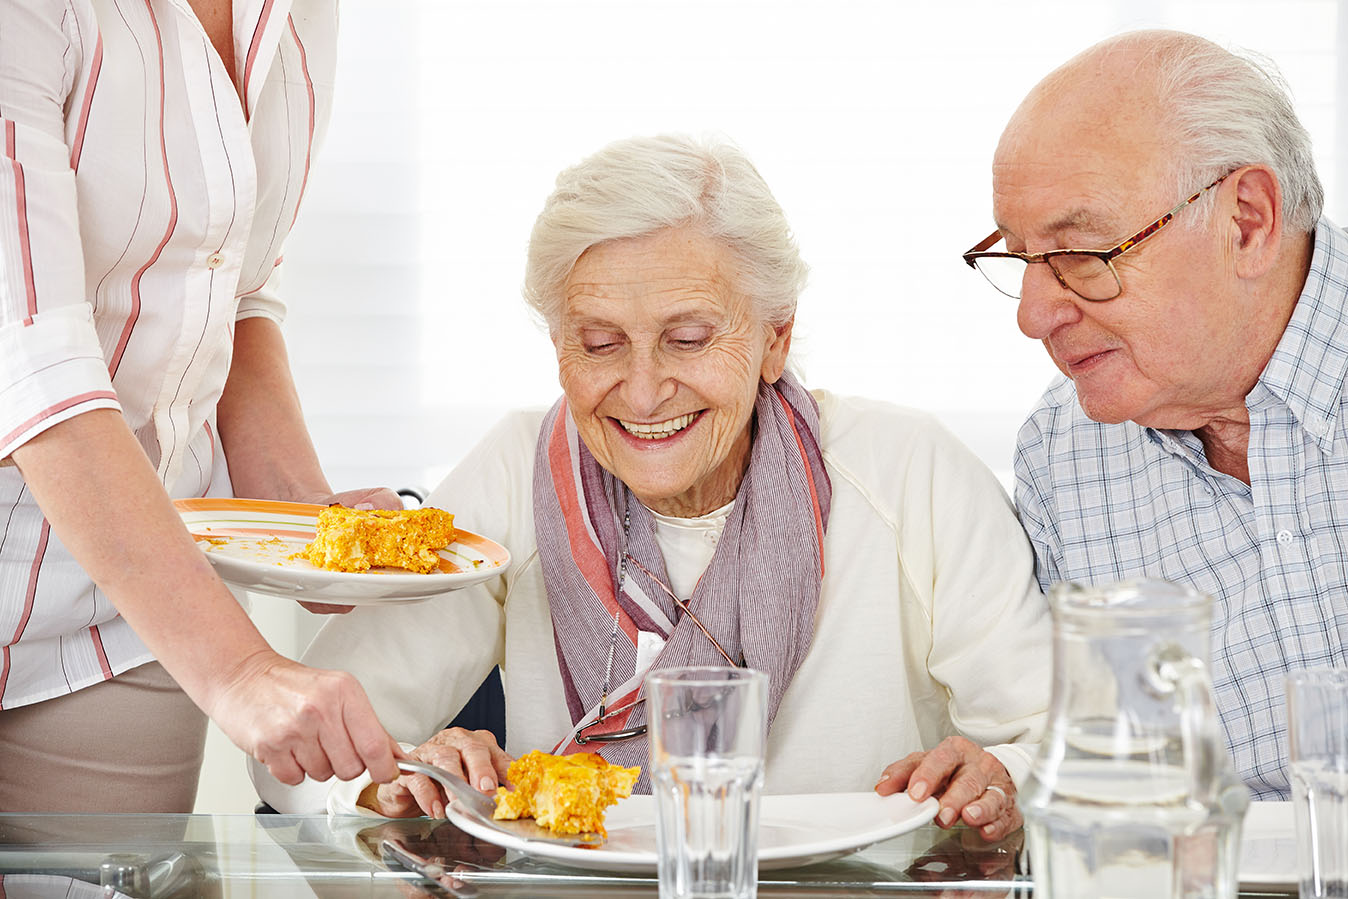 How to turn your aged care cooks into world class chefs